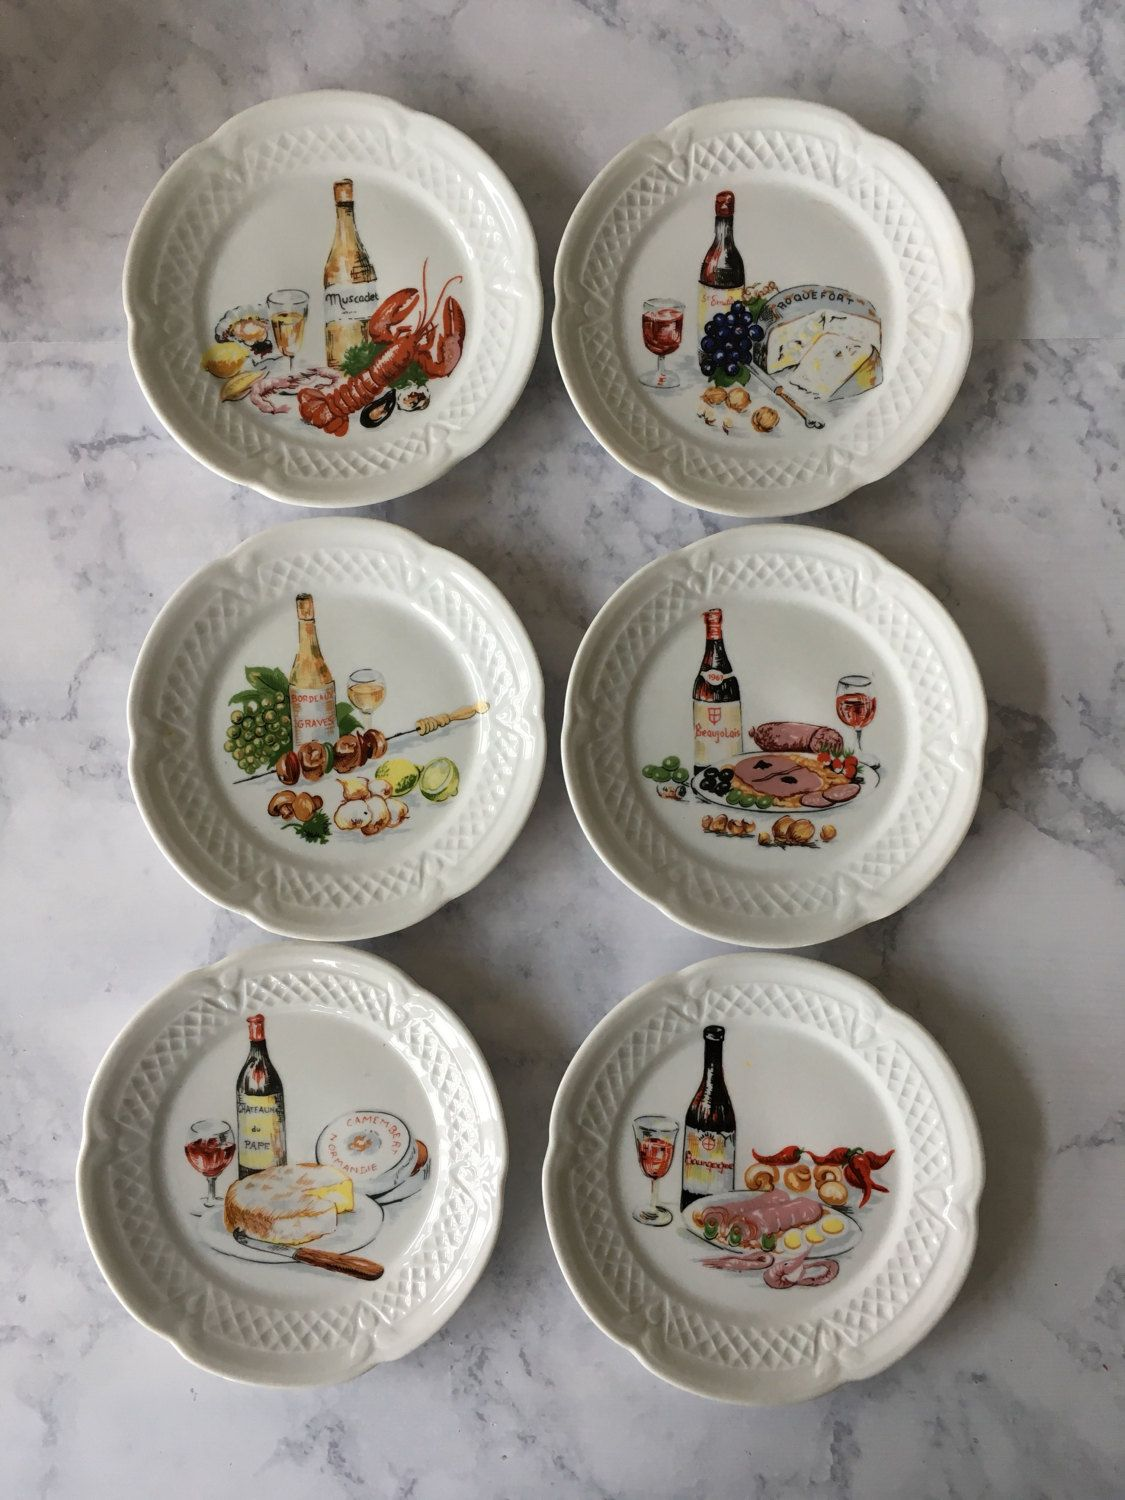 Vintage Philippe Deshoulieres Plates Wine and Cheese Canape Plates - set of 6 | French porcelain china appetizer plates | Made in France & Vintage Philippe Deshoulieres Plates Wine and Cheese Canape Plates ...